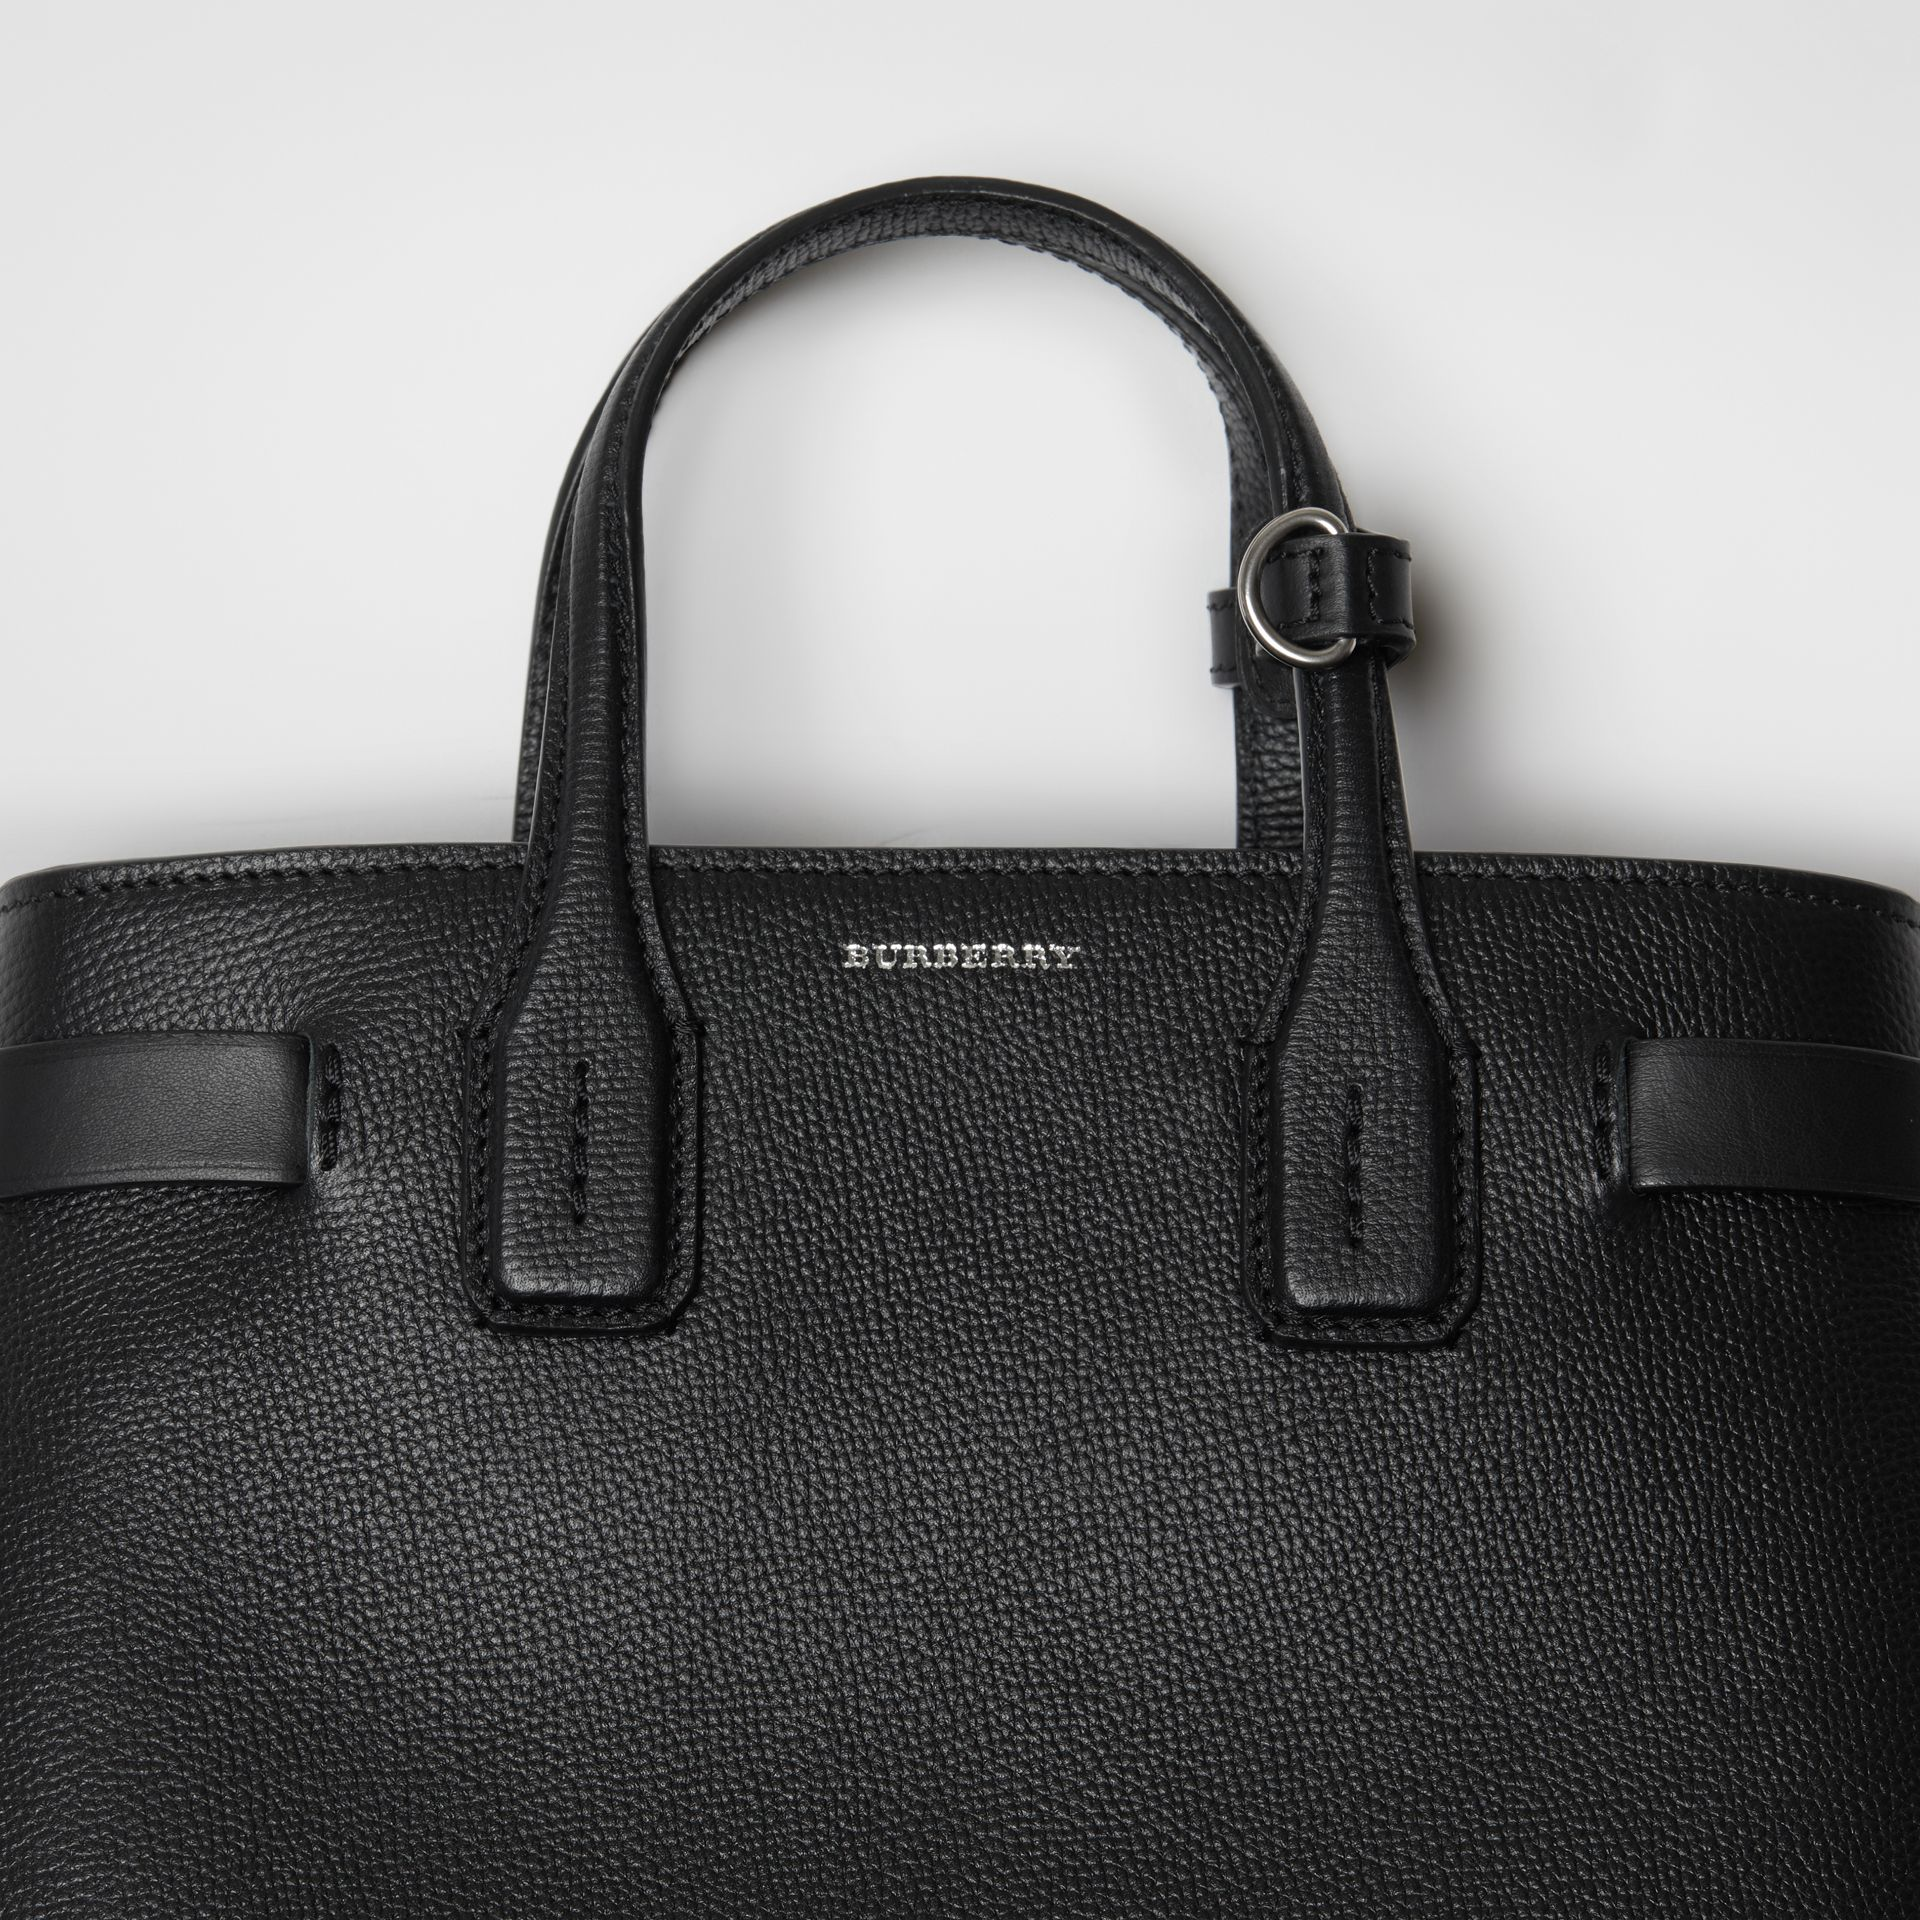 Petit sac The Banner en cuir grainé (Noir) - Femme | Burberry Canada - photo de la galerie 1